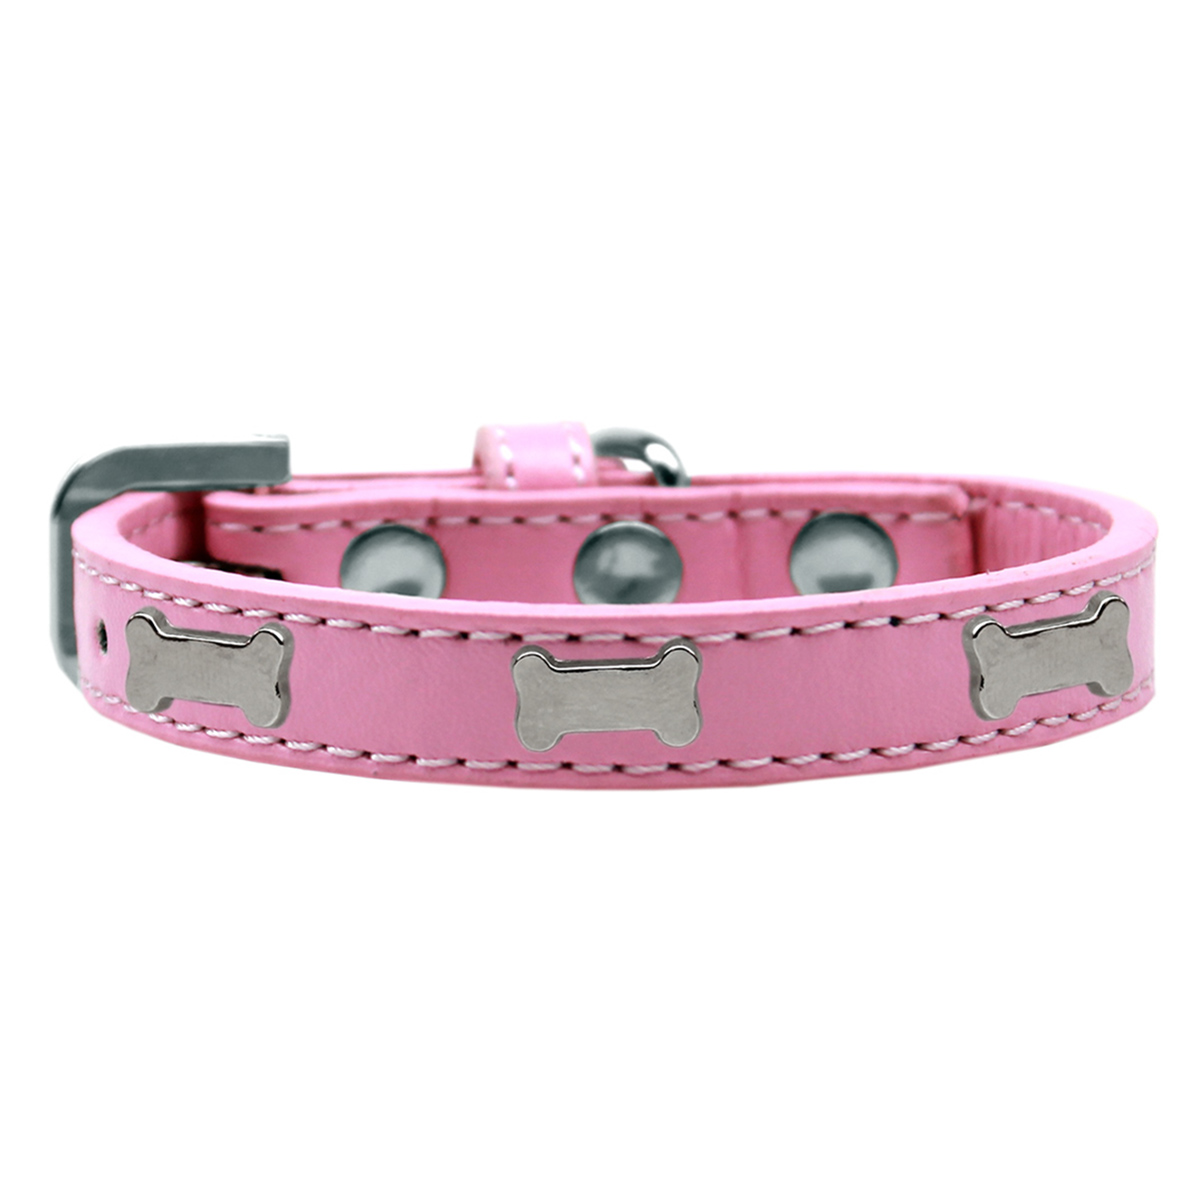 Silver Bone Widget Dog Collar - Light Pink